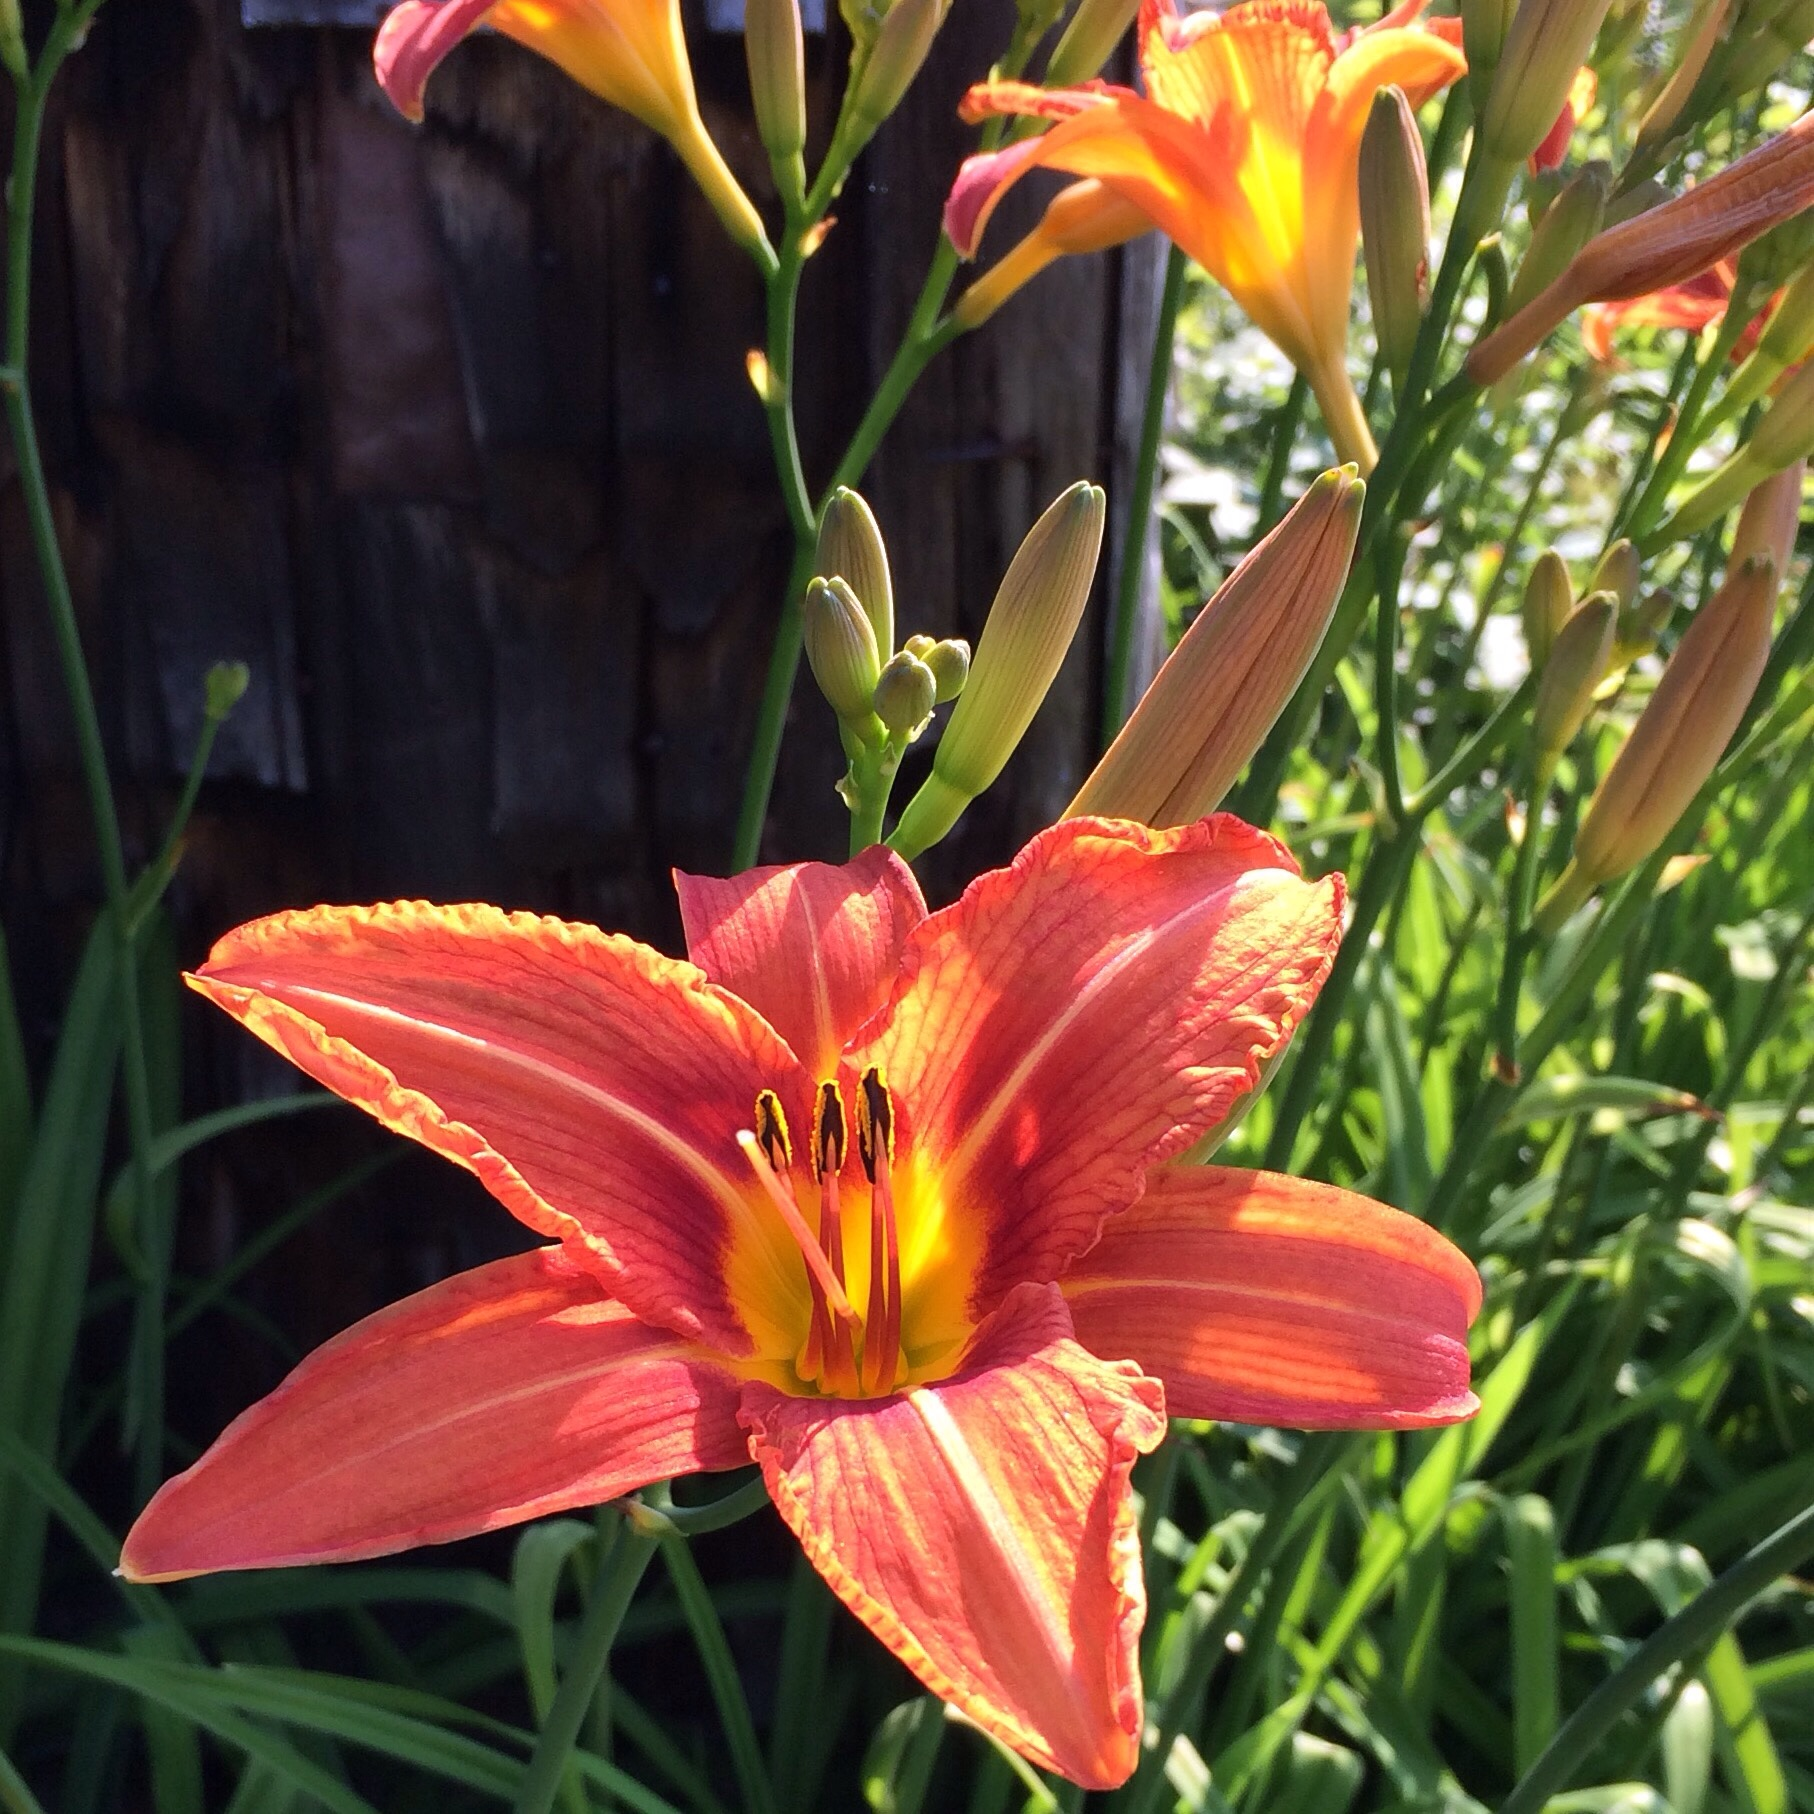 Daylilies are popping today in the sun and heat.